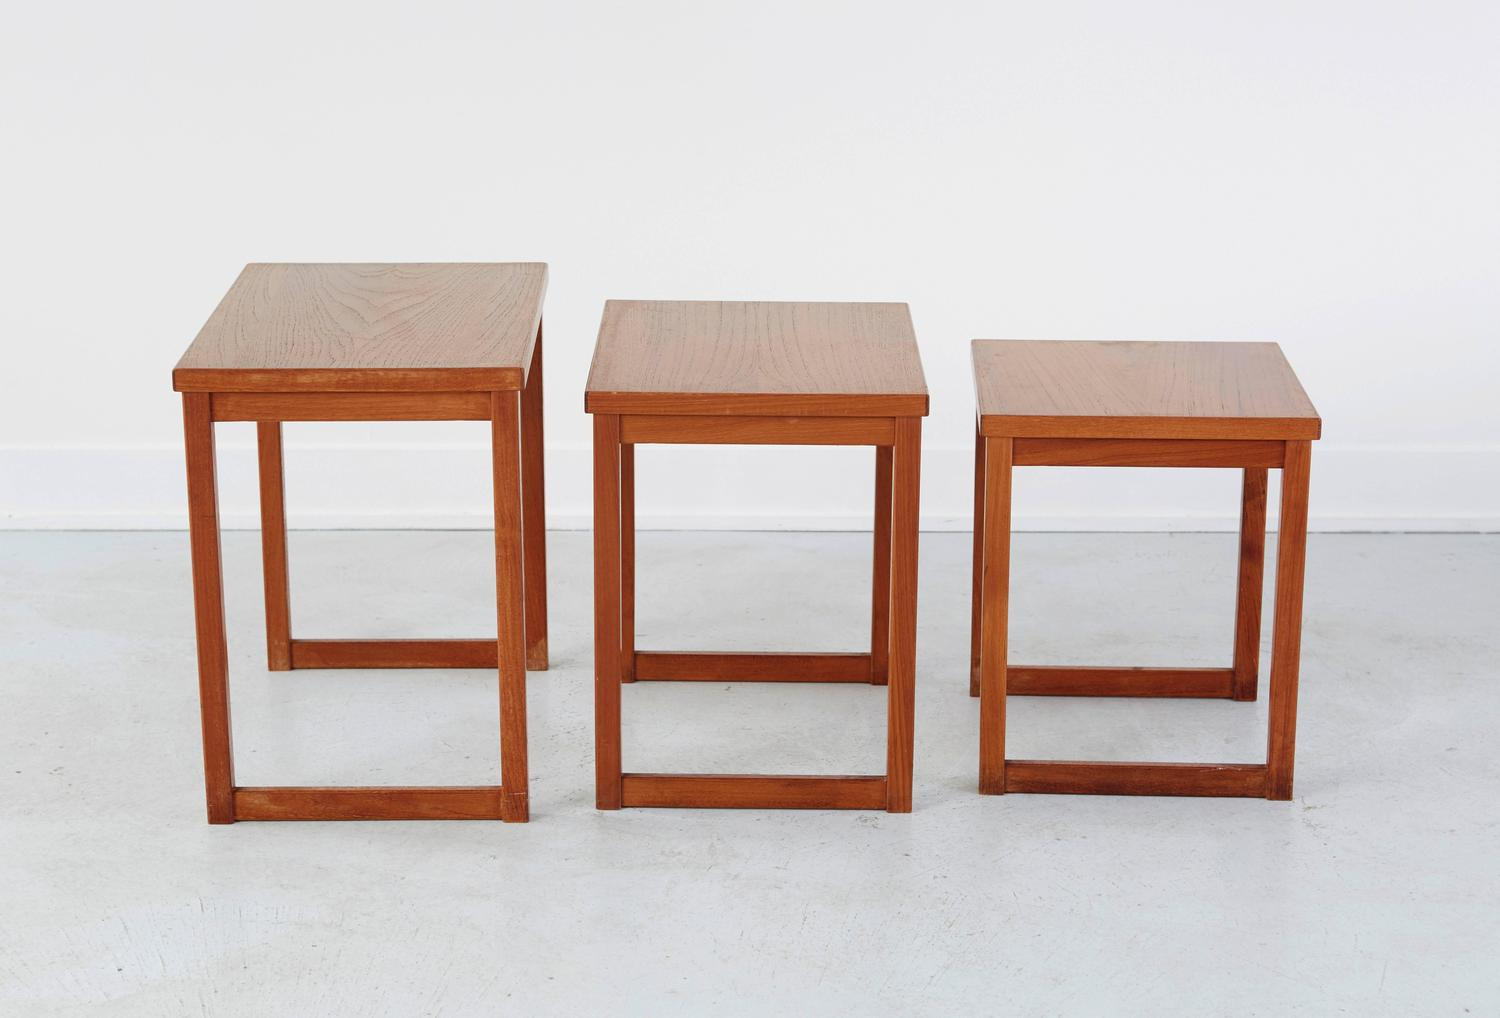 Kai Kristiansen Nesting Tables For Sale At 1stdibs. Full resolution‎  image, nominally Width 1500 Height 1018 pixels, image with #4F170C.